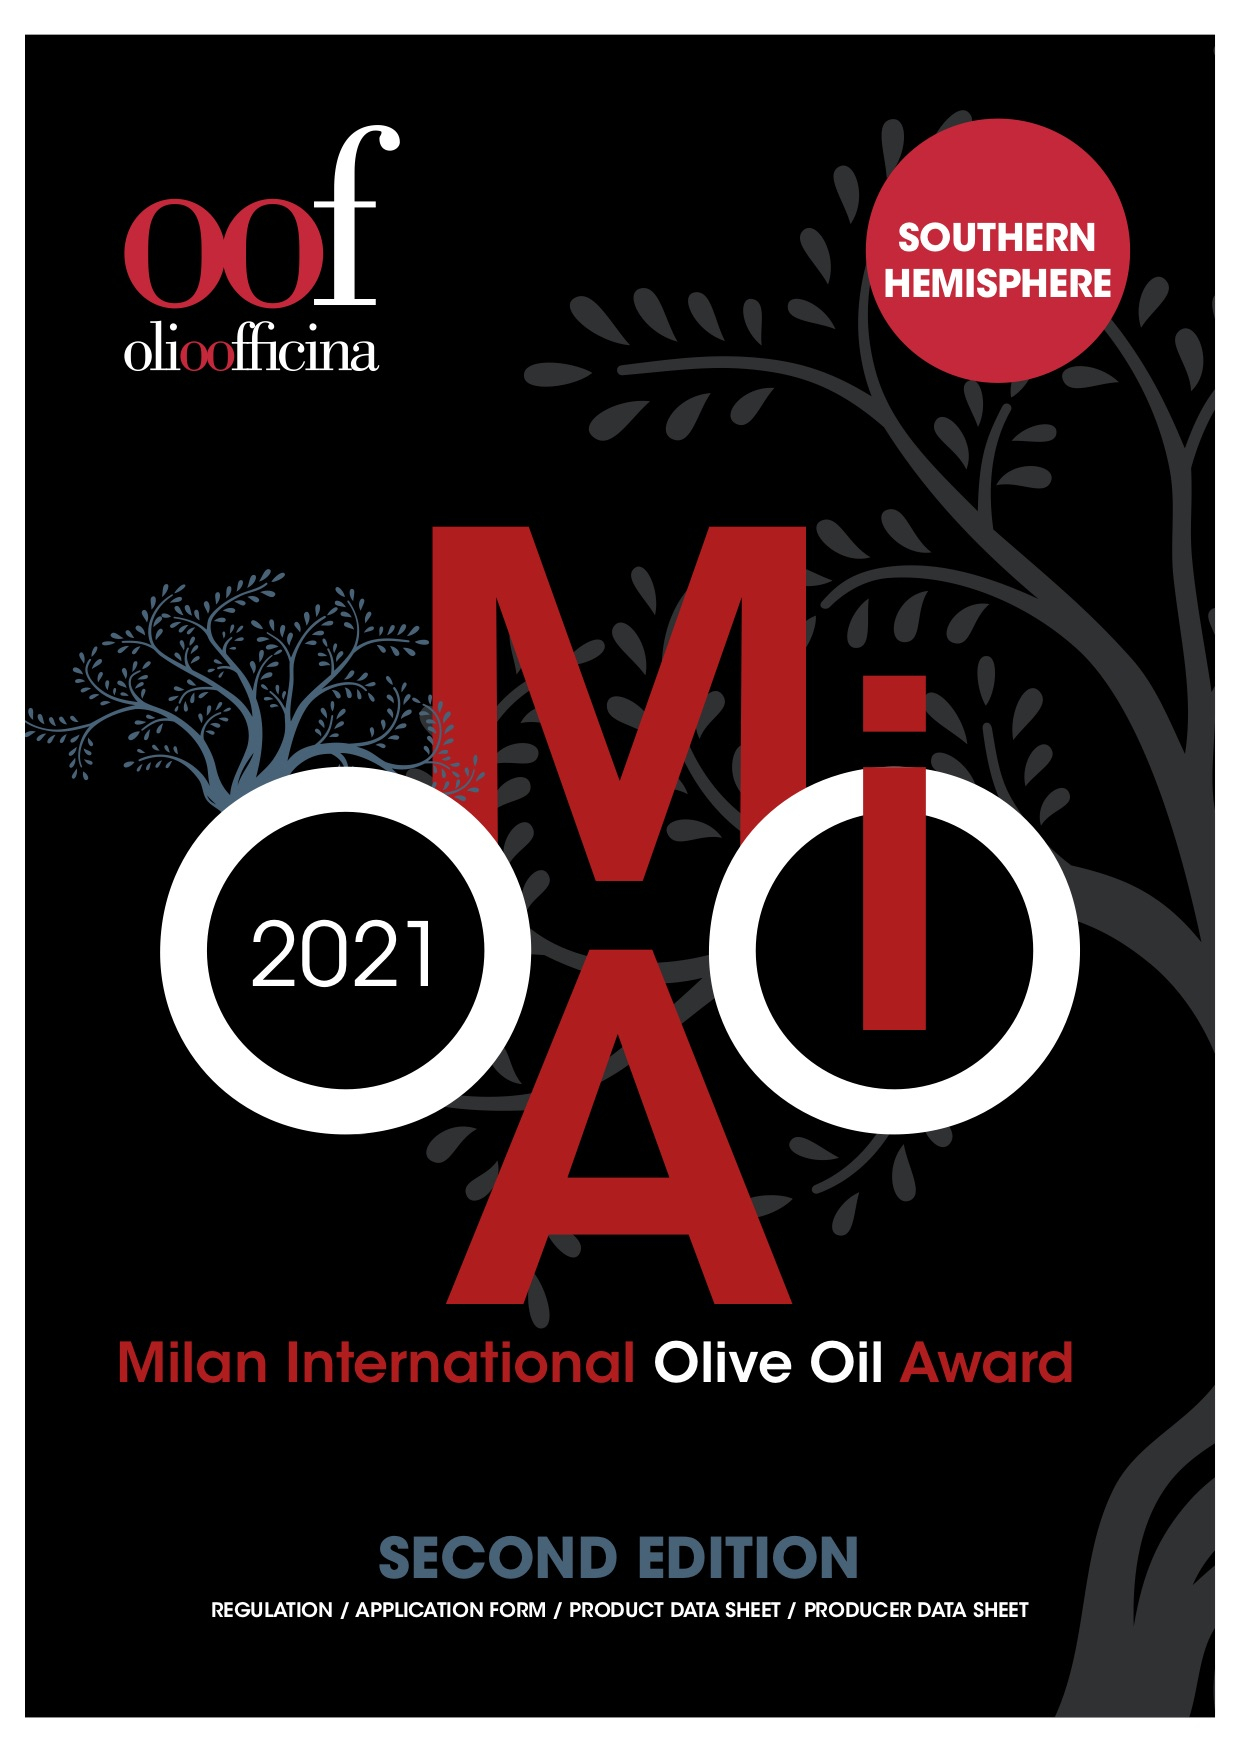 The las day, but not the least, to join the Milan International Olive Oil Award competition